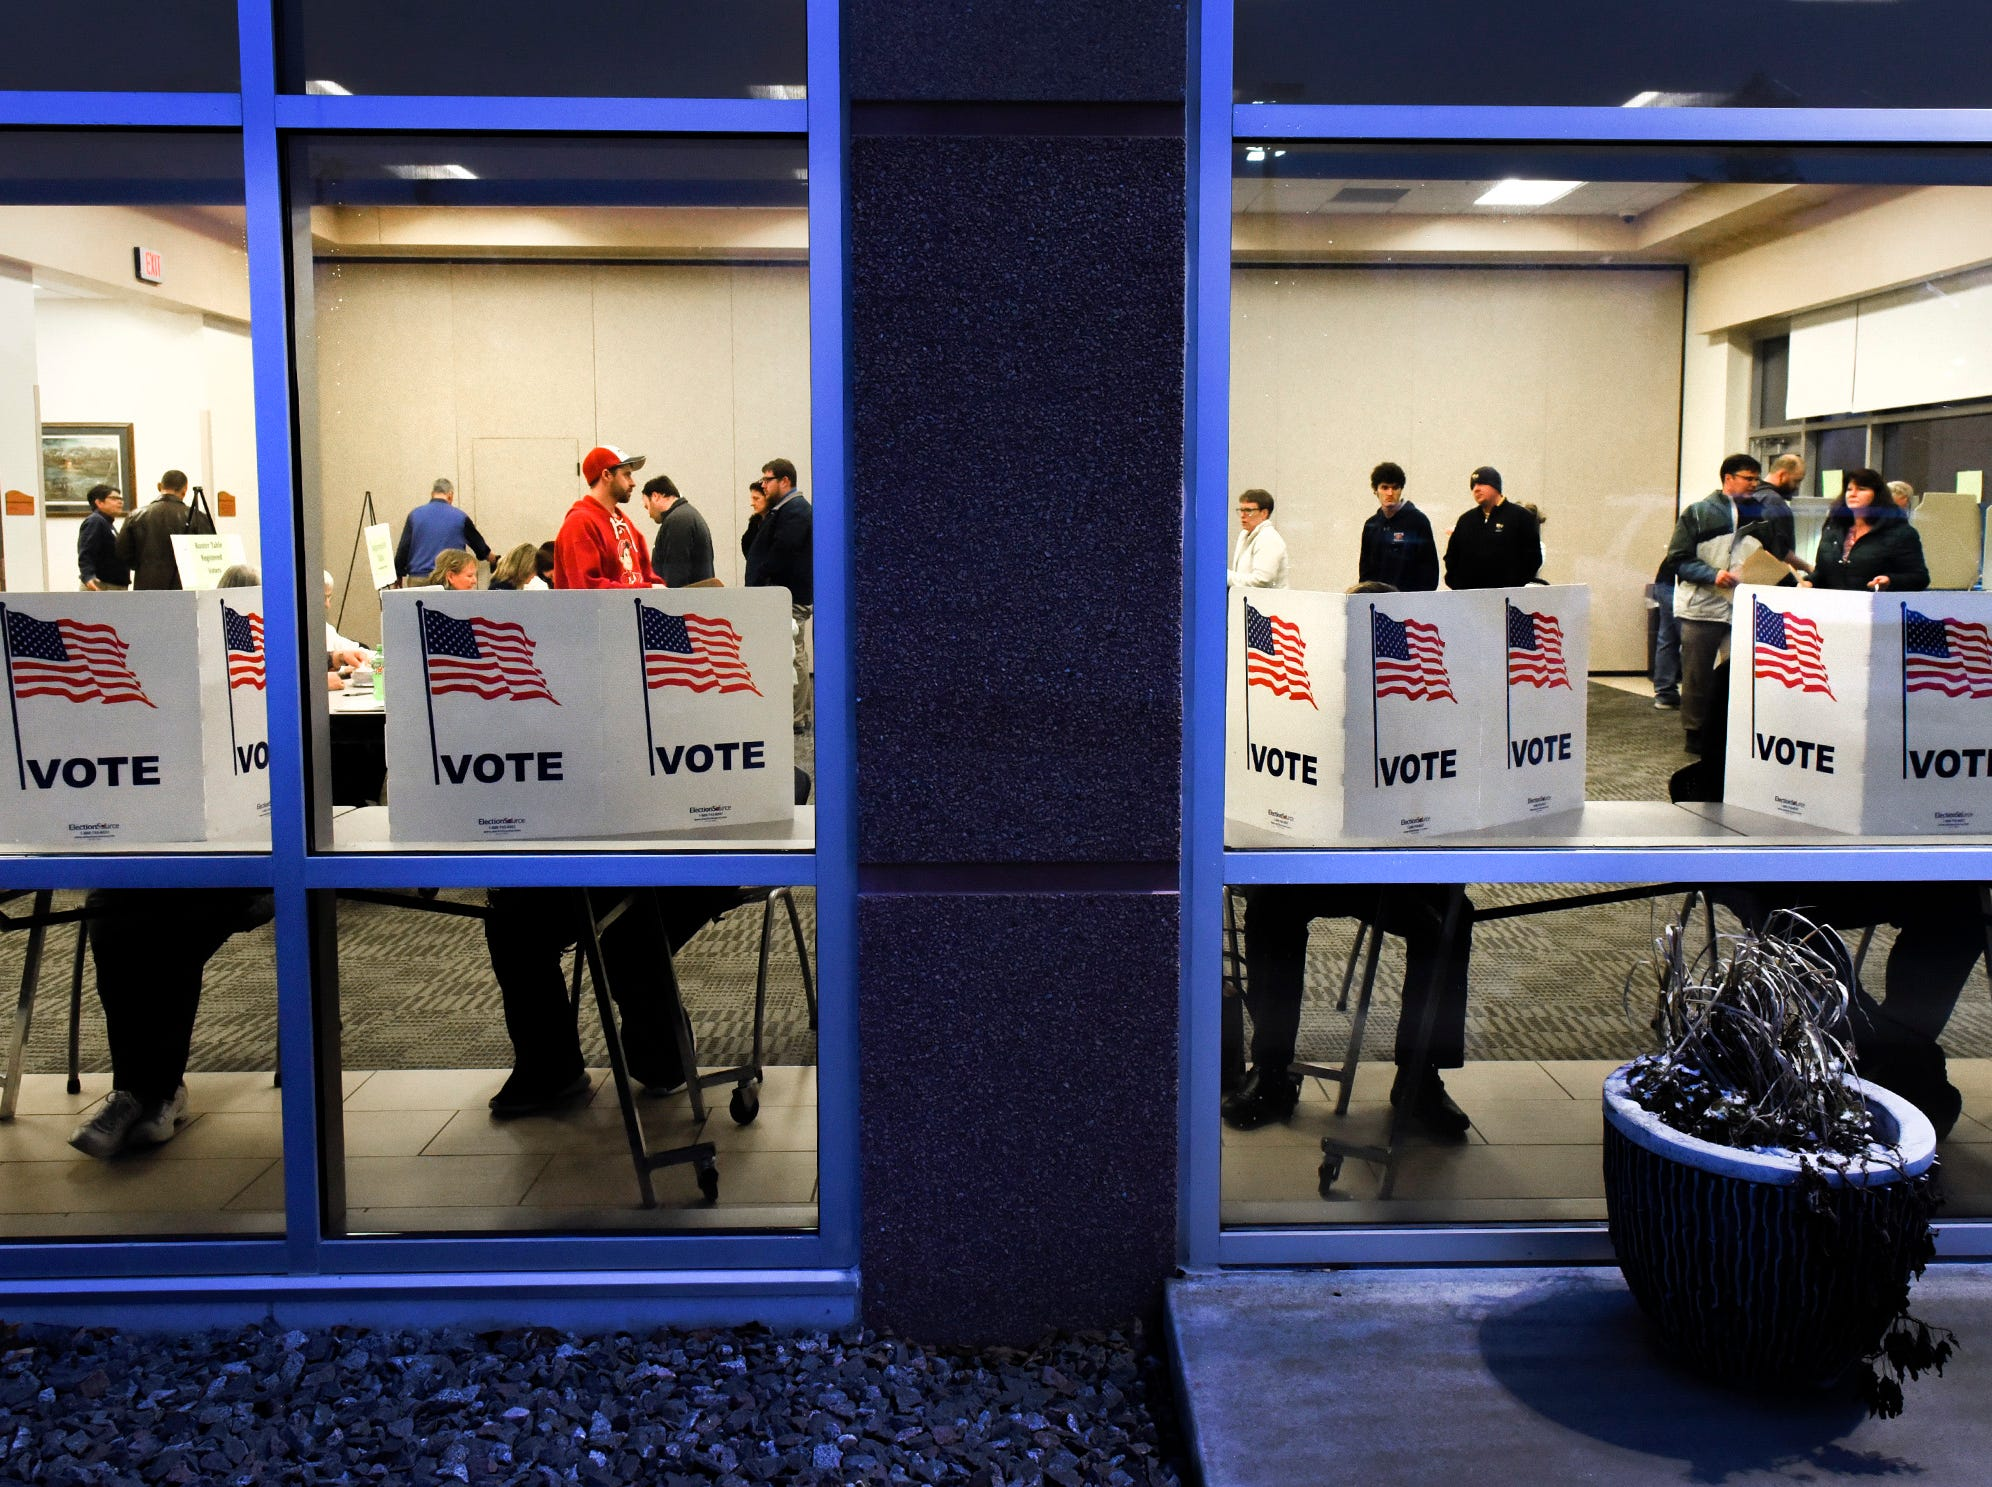 Voters wait for an open seat to fill out their ballots Tuesday, Nov. 6, at the Sauk Rapids Government Center.